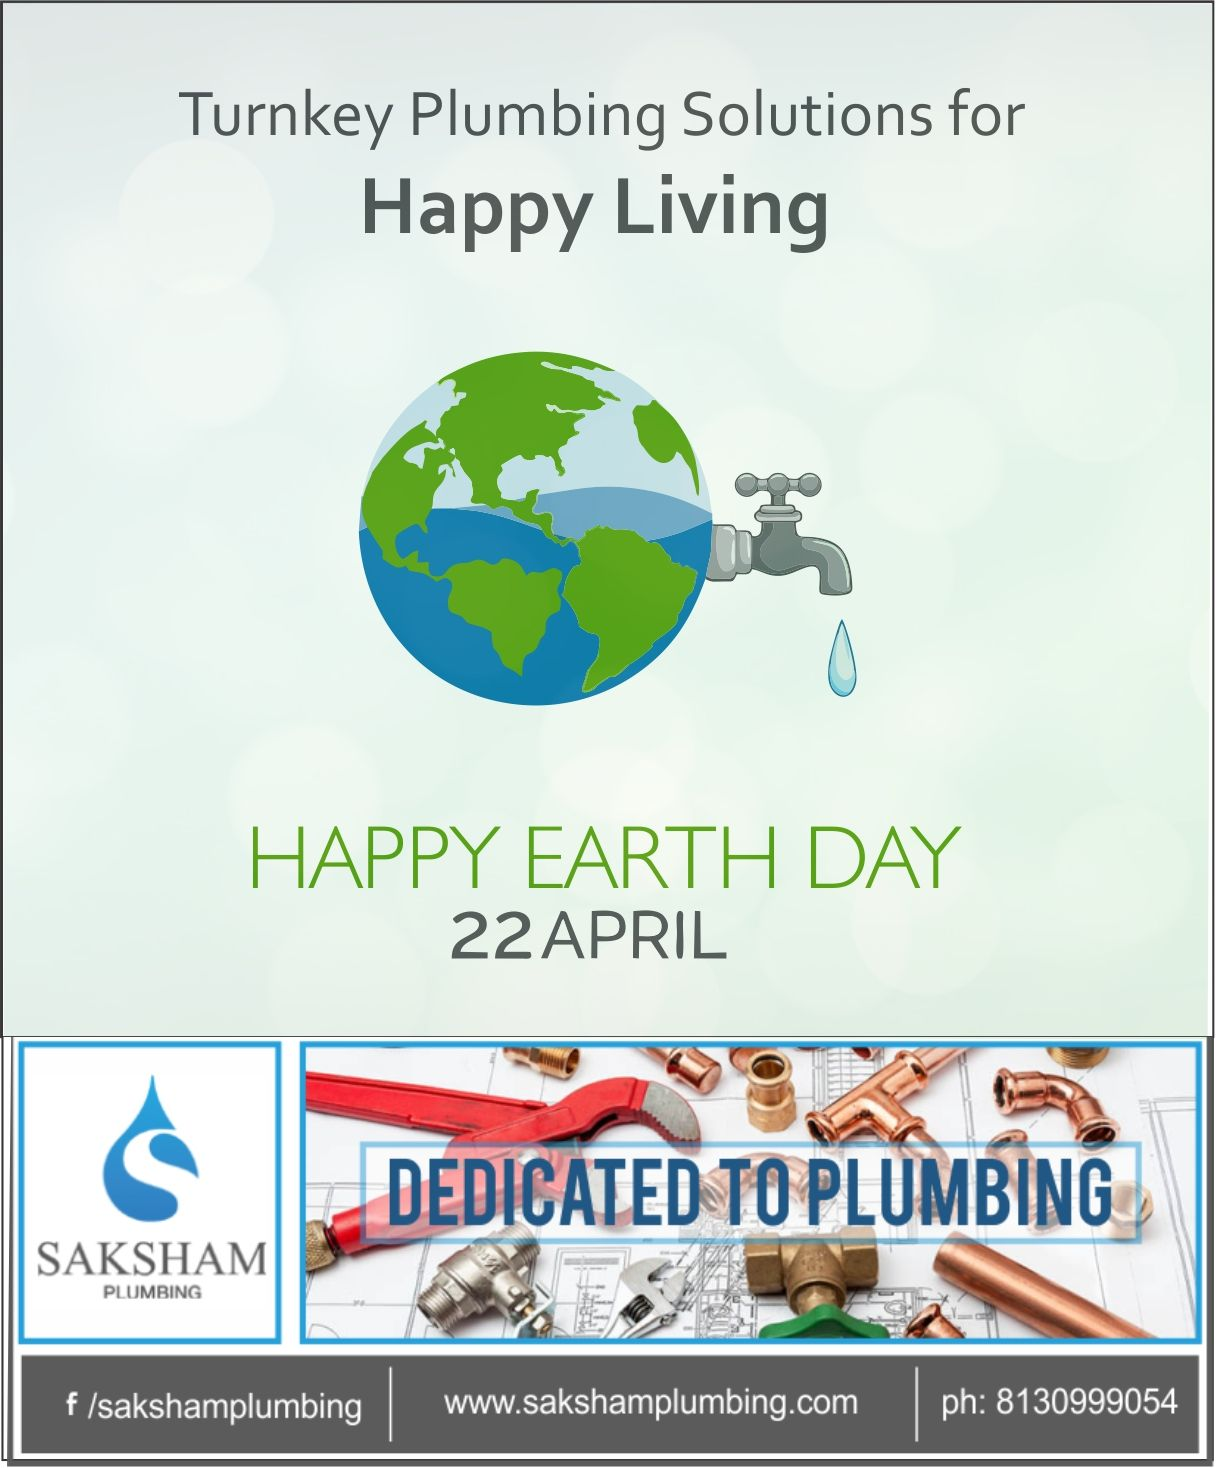 Saksham offers #turnkeyplumbingsolutions that reduces the impact on our environment. Book an appointment today for a happy and stress free living.